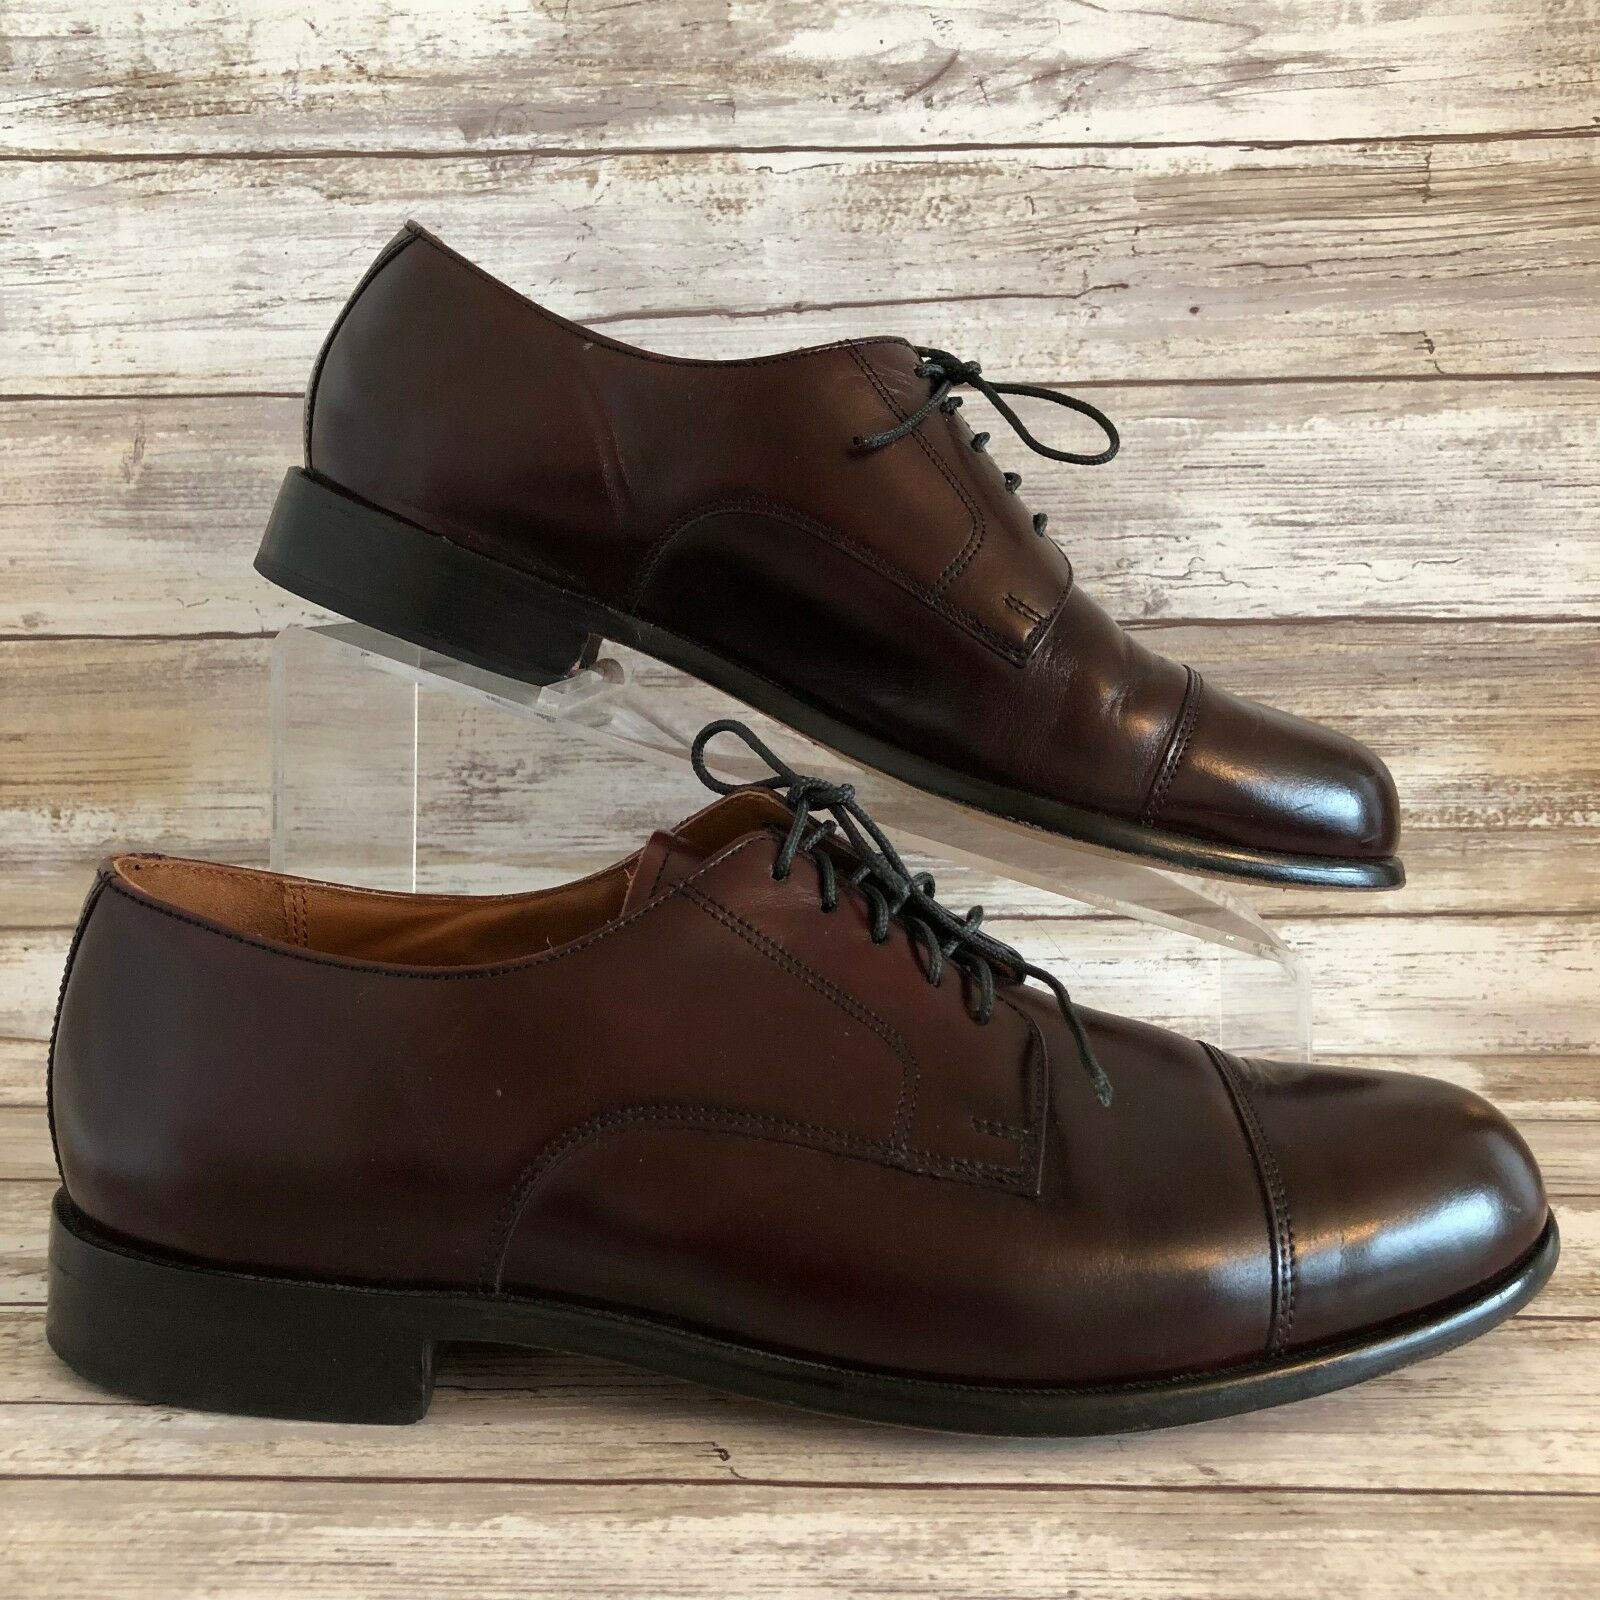 Bostonian Oxford Dress shoes 8.5M Burgundy Leather Cap Toe Classics Flex First